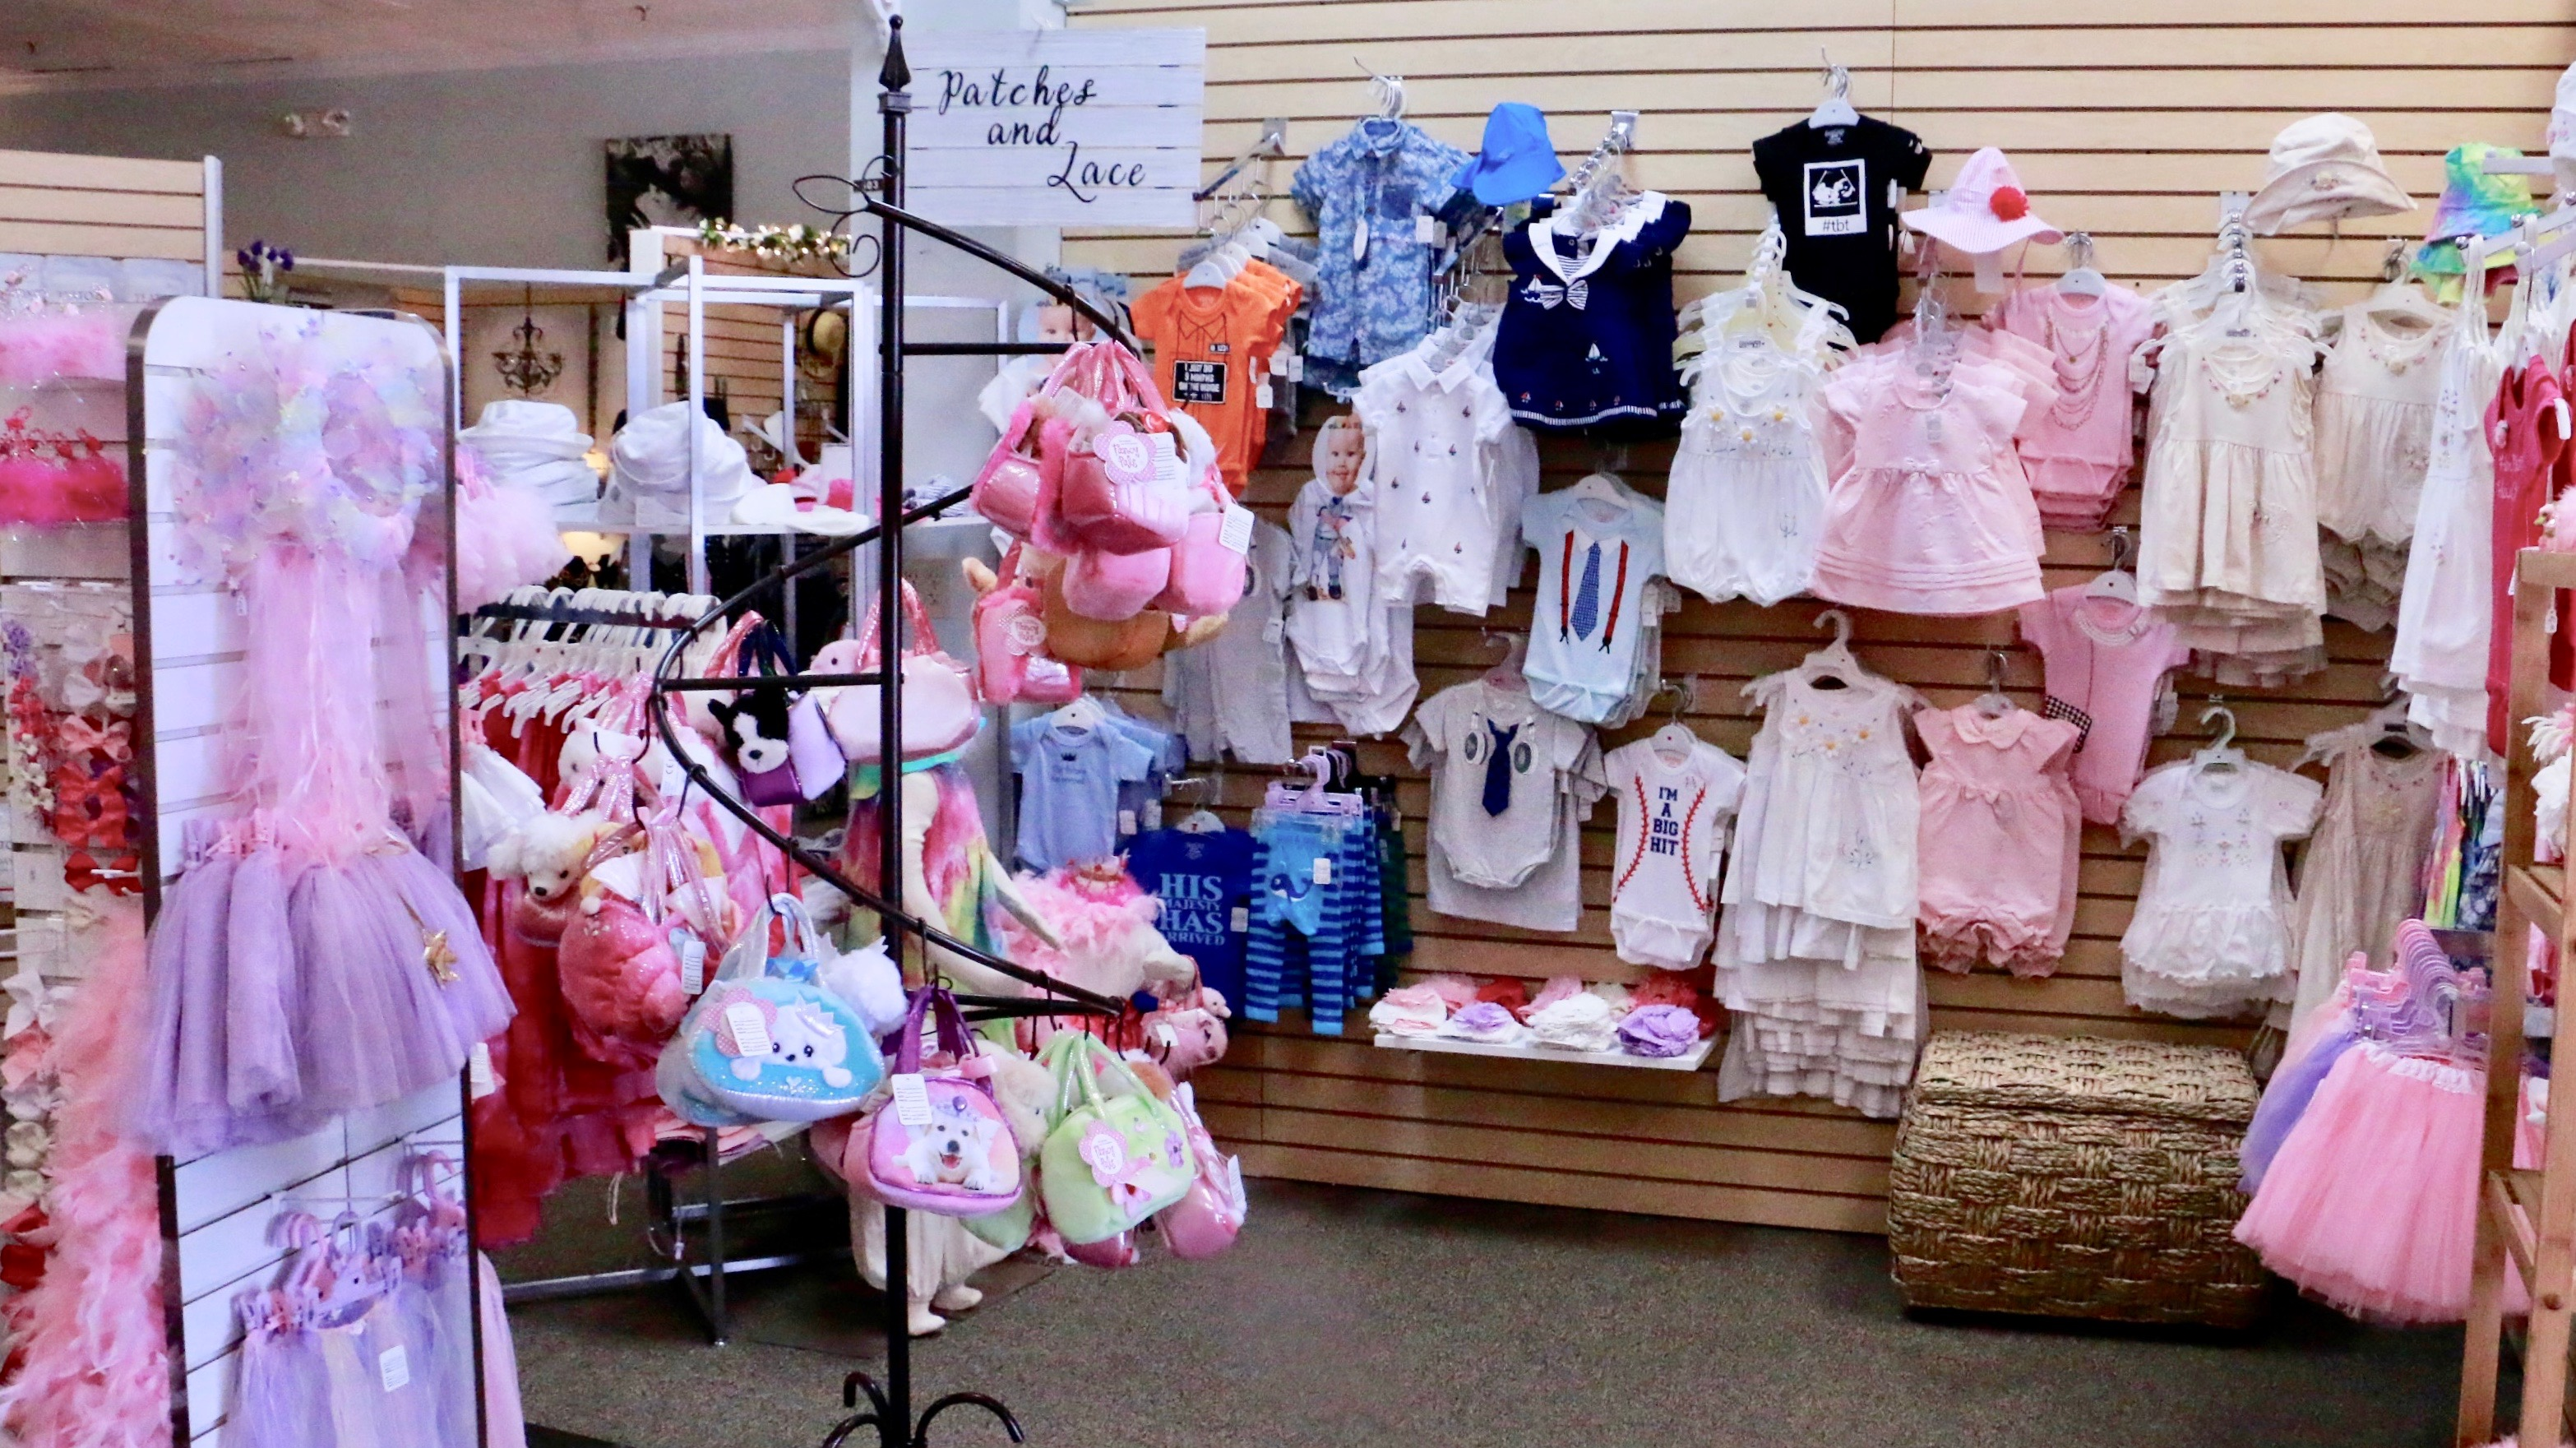 Patches and Lace Shoppe Photo